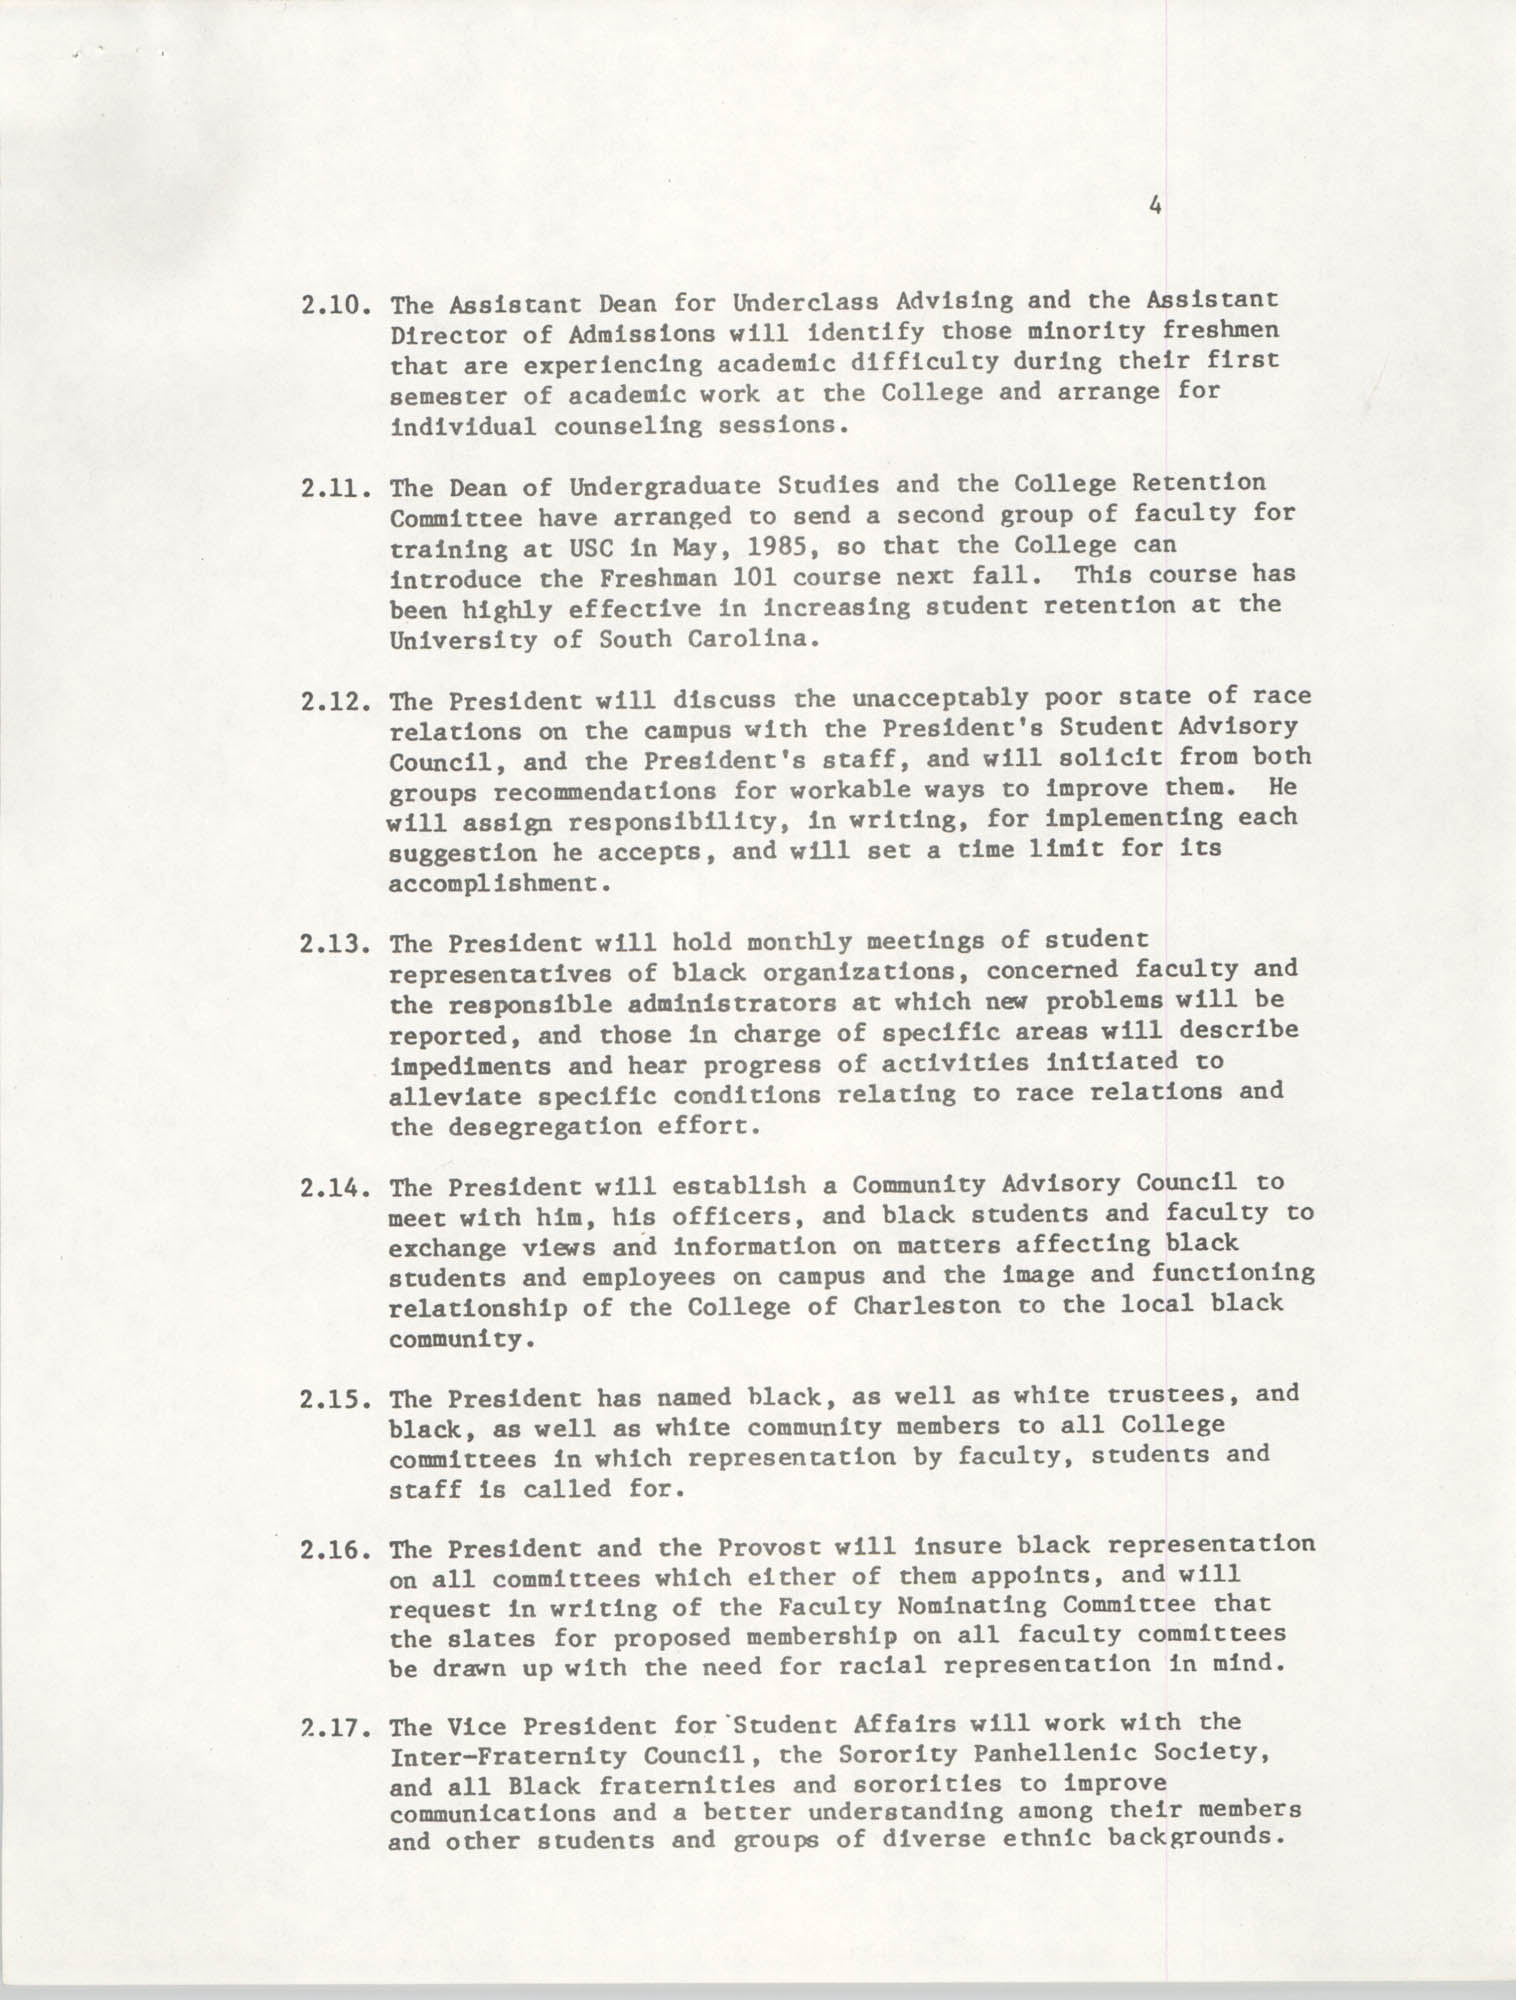 College of Charleston, Updated Summary of Desegregation Efforts, Page 4